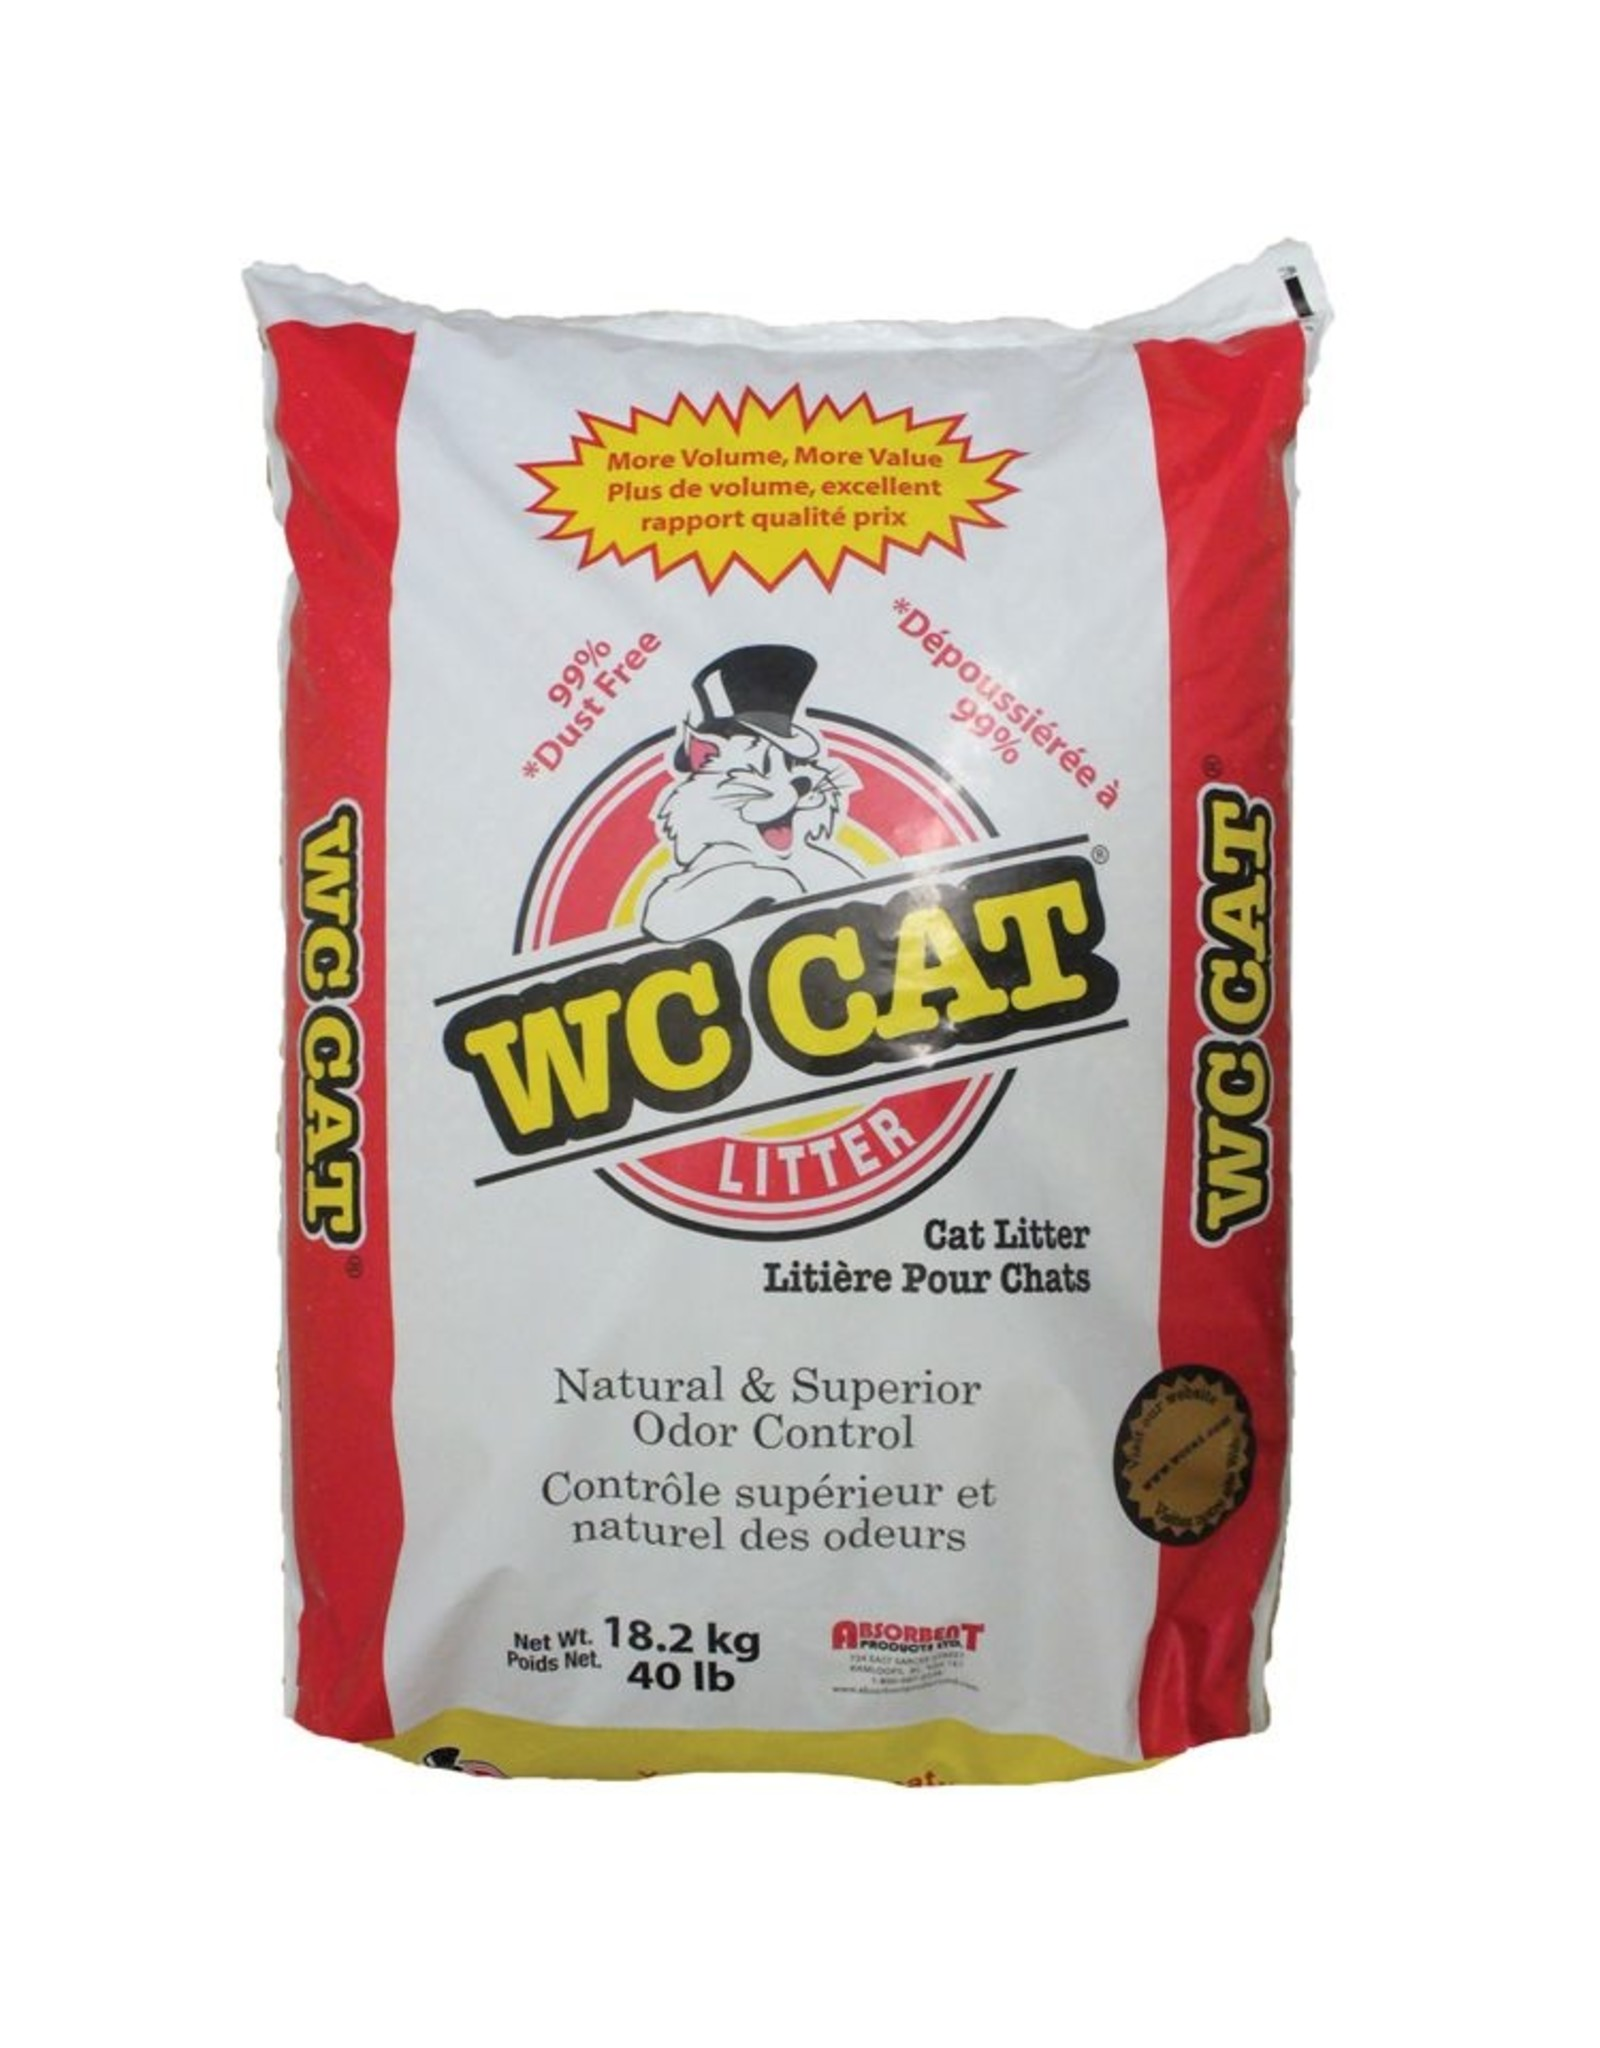 WC Cat Litter